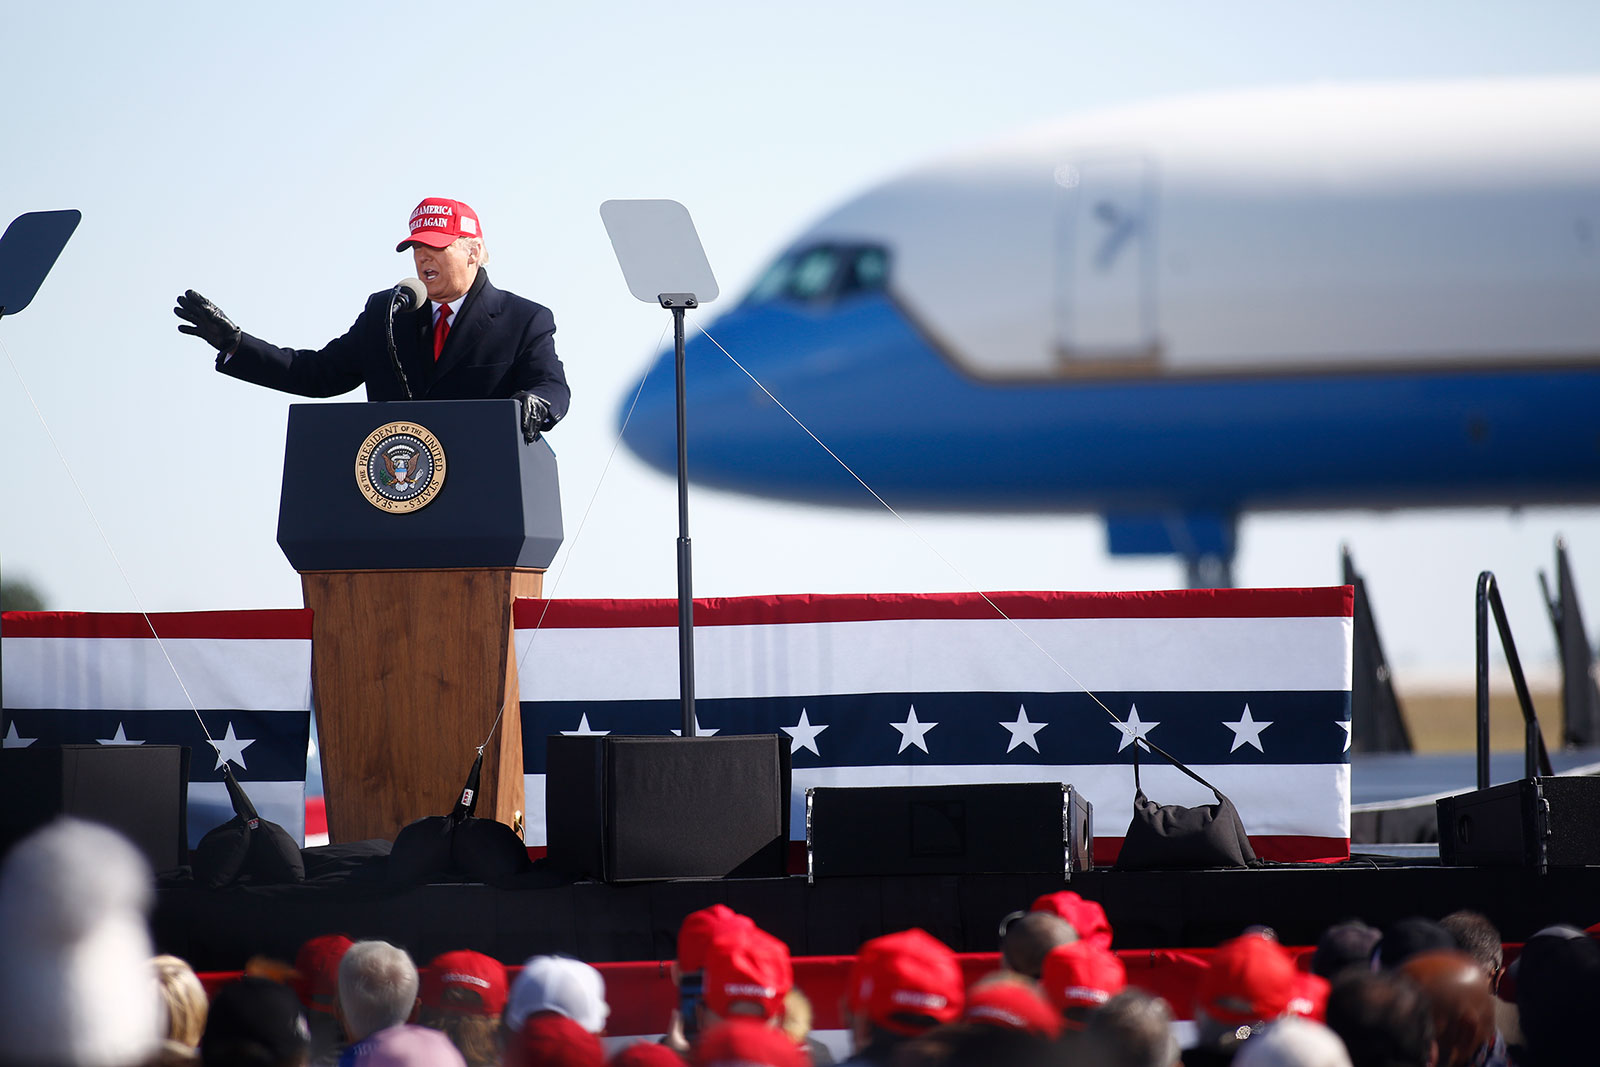 President Trump speaks during a campaign rally in Fayetteville, North Carolina, on Monday.